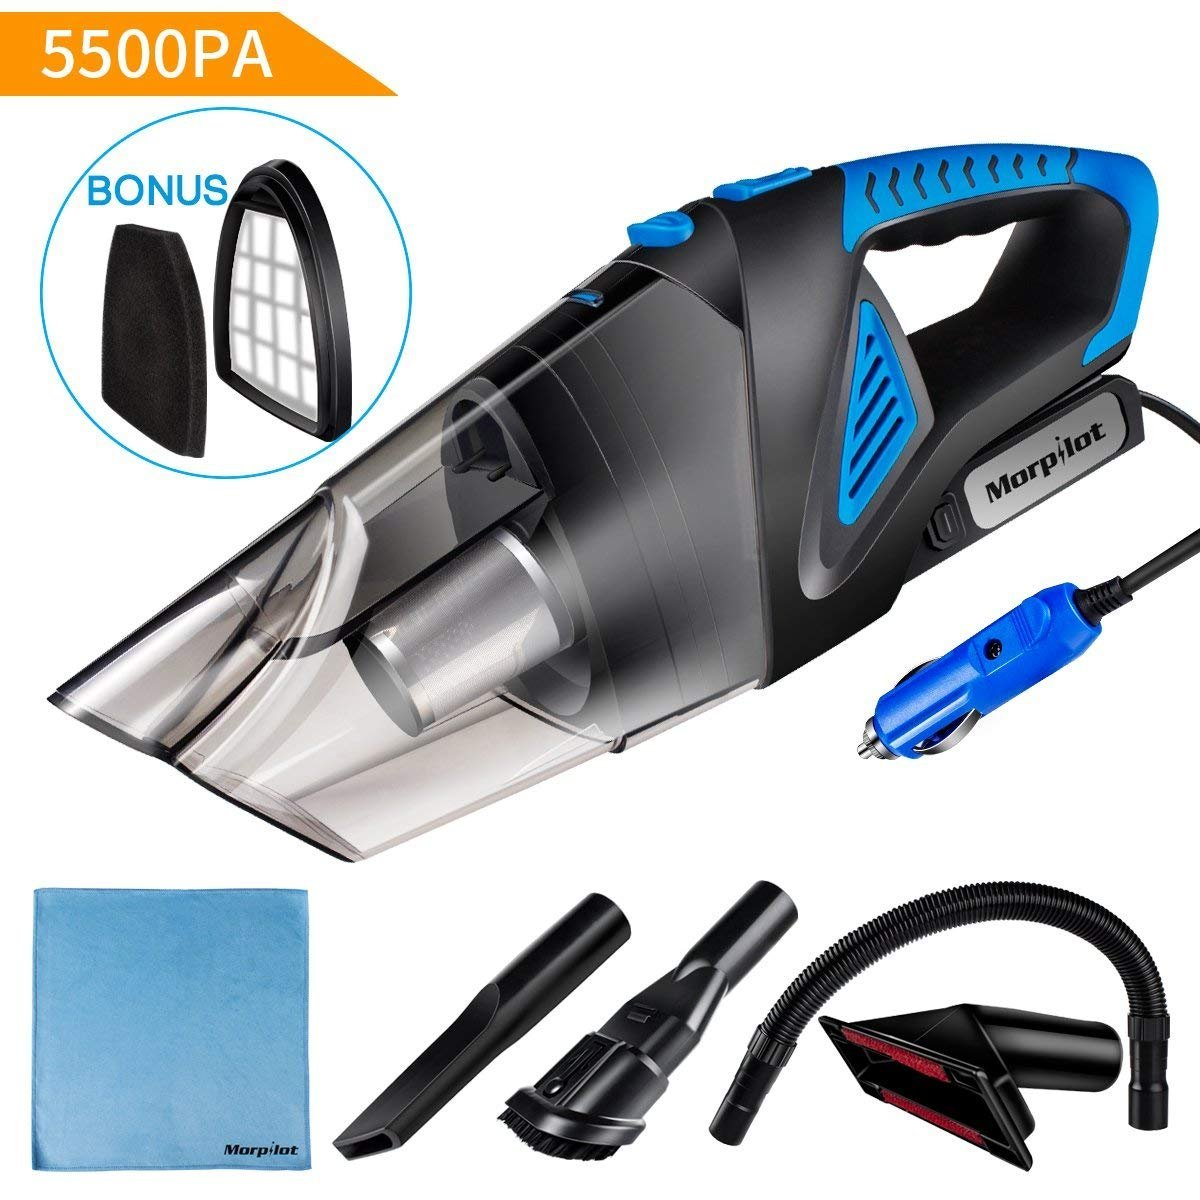 Car Vacuum Cleaner High Power,Morpilot 5500Pa DC 12V 120W Portable Handheld Auto Vacuum Cleaner Auto Lightweight Cleaner Hand VAC with Stainless Steel HEPA Filter